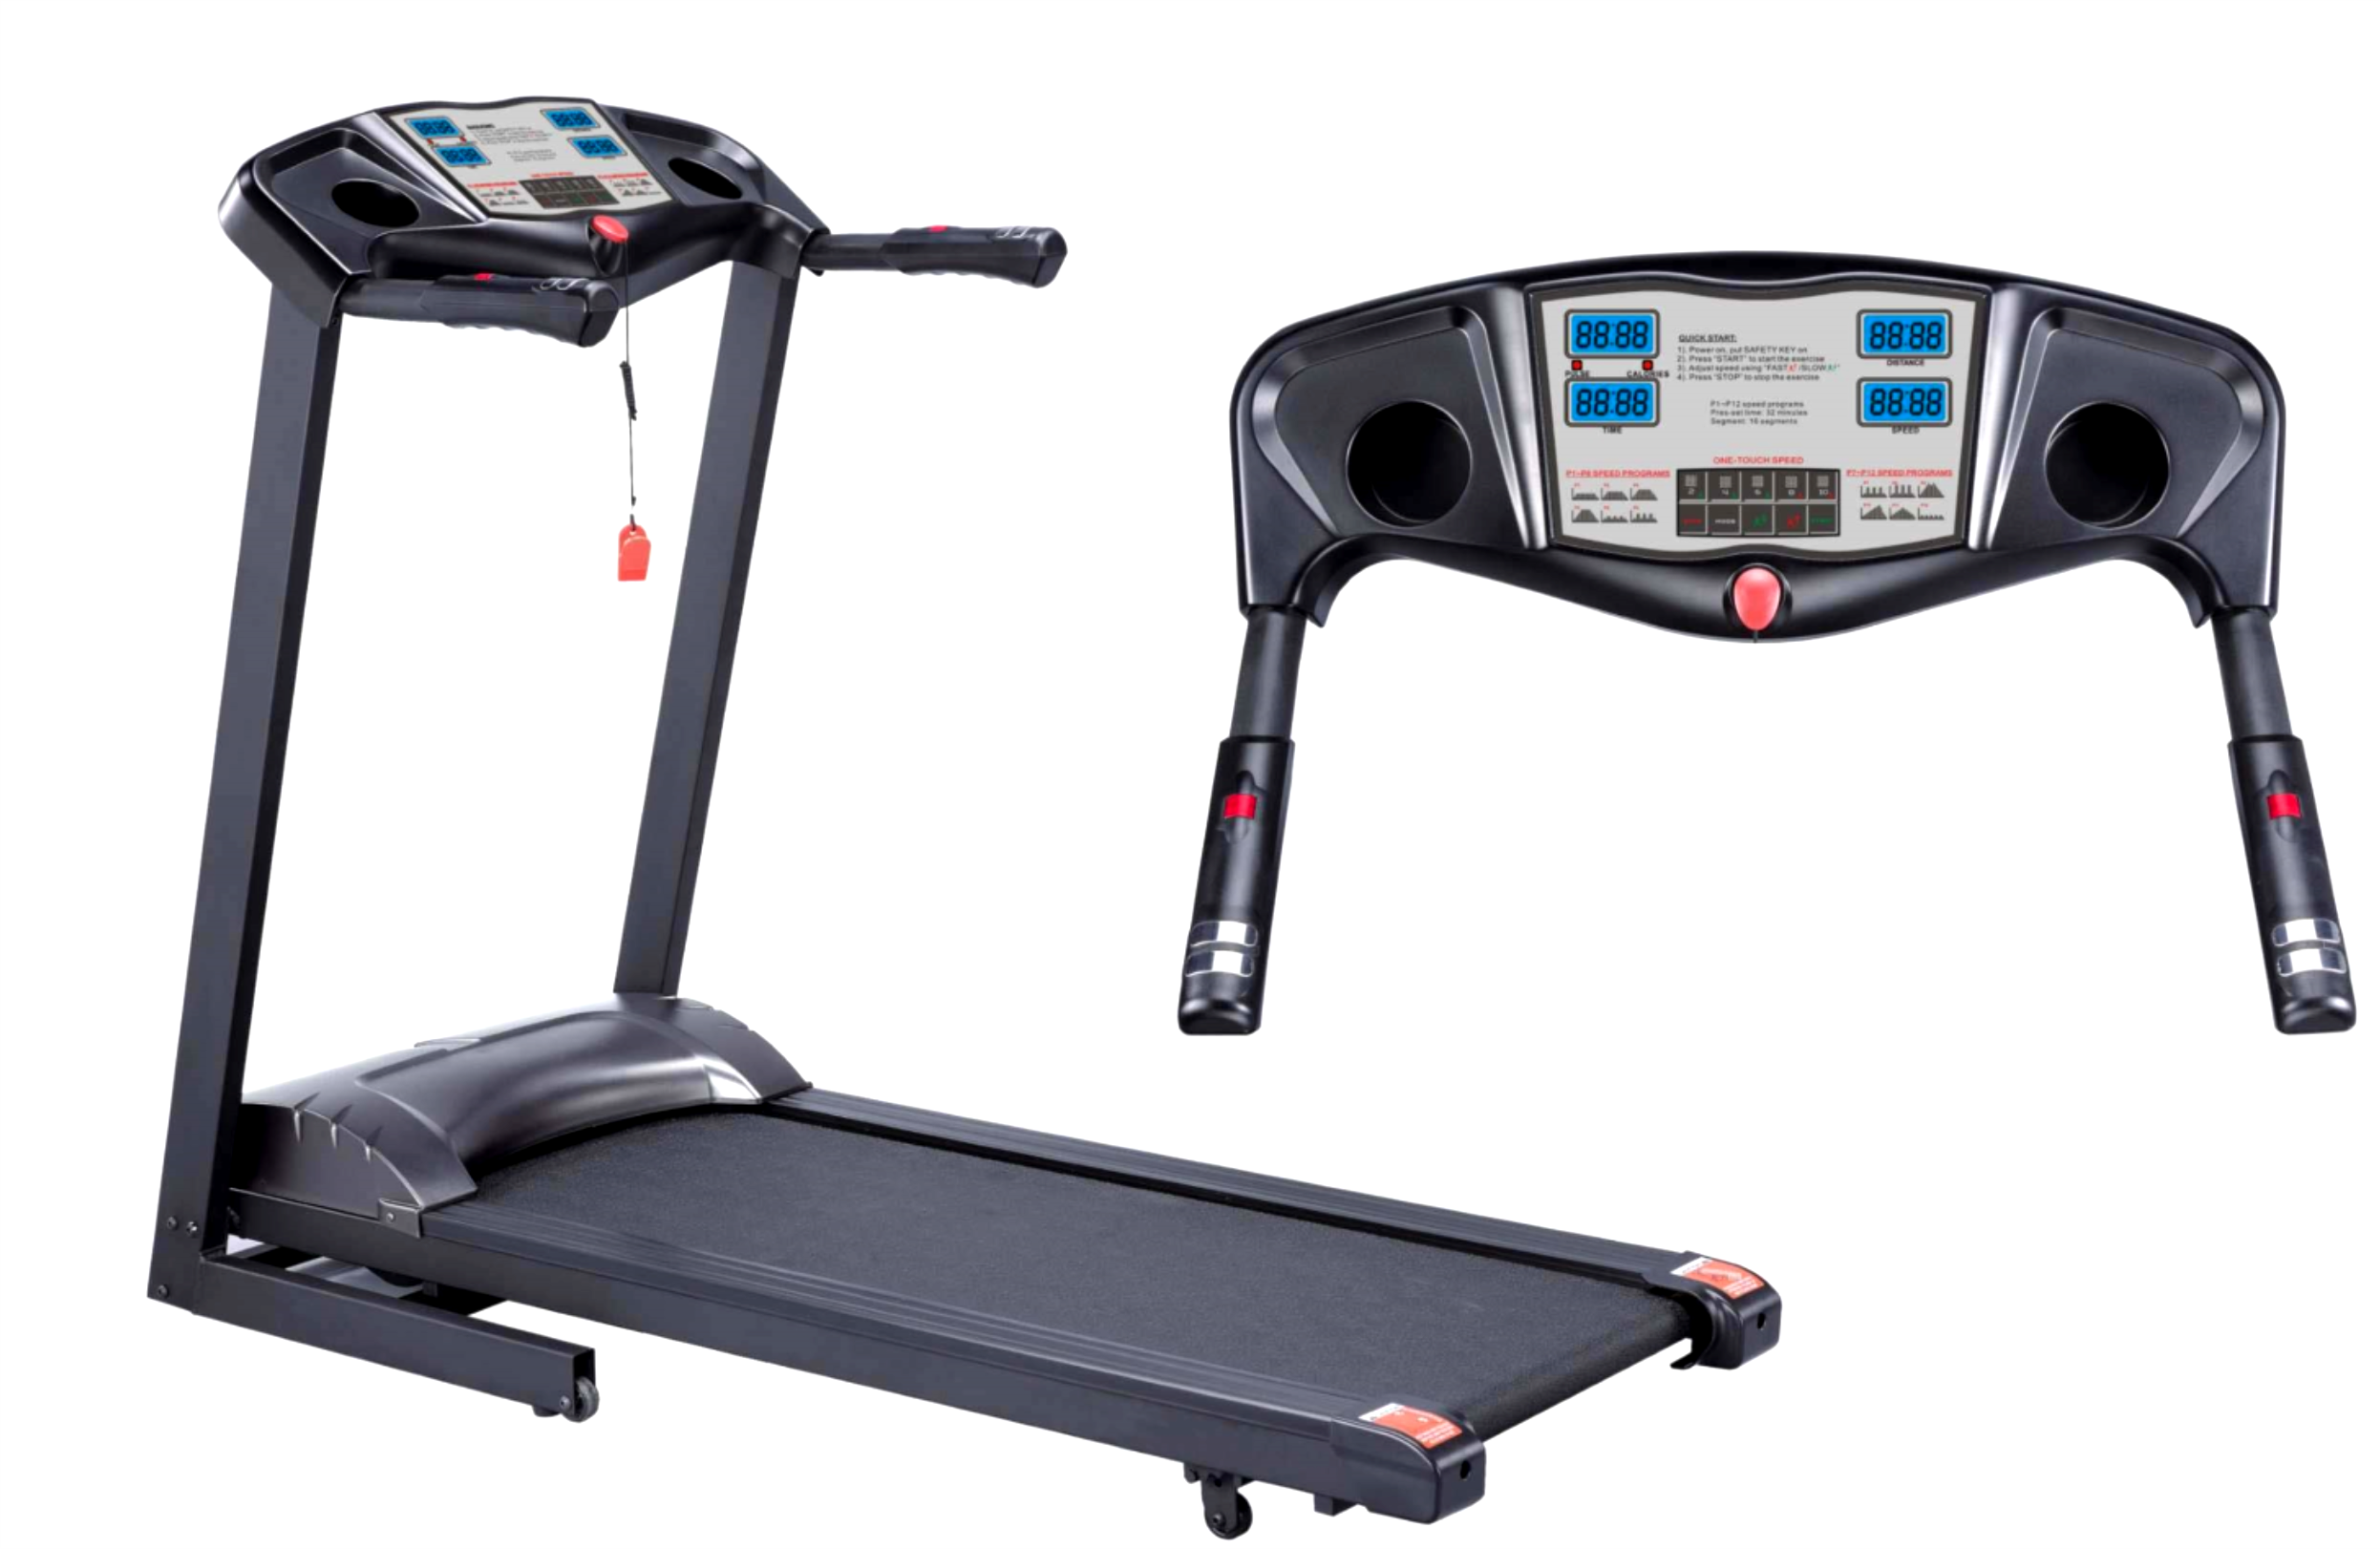 Treadmill-Spirit 2000S (T45000)